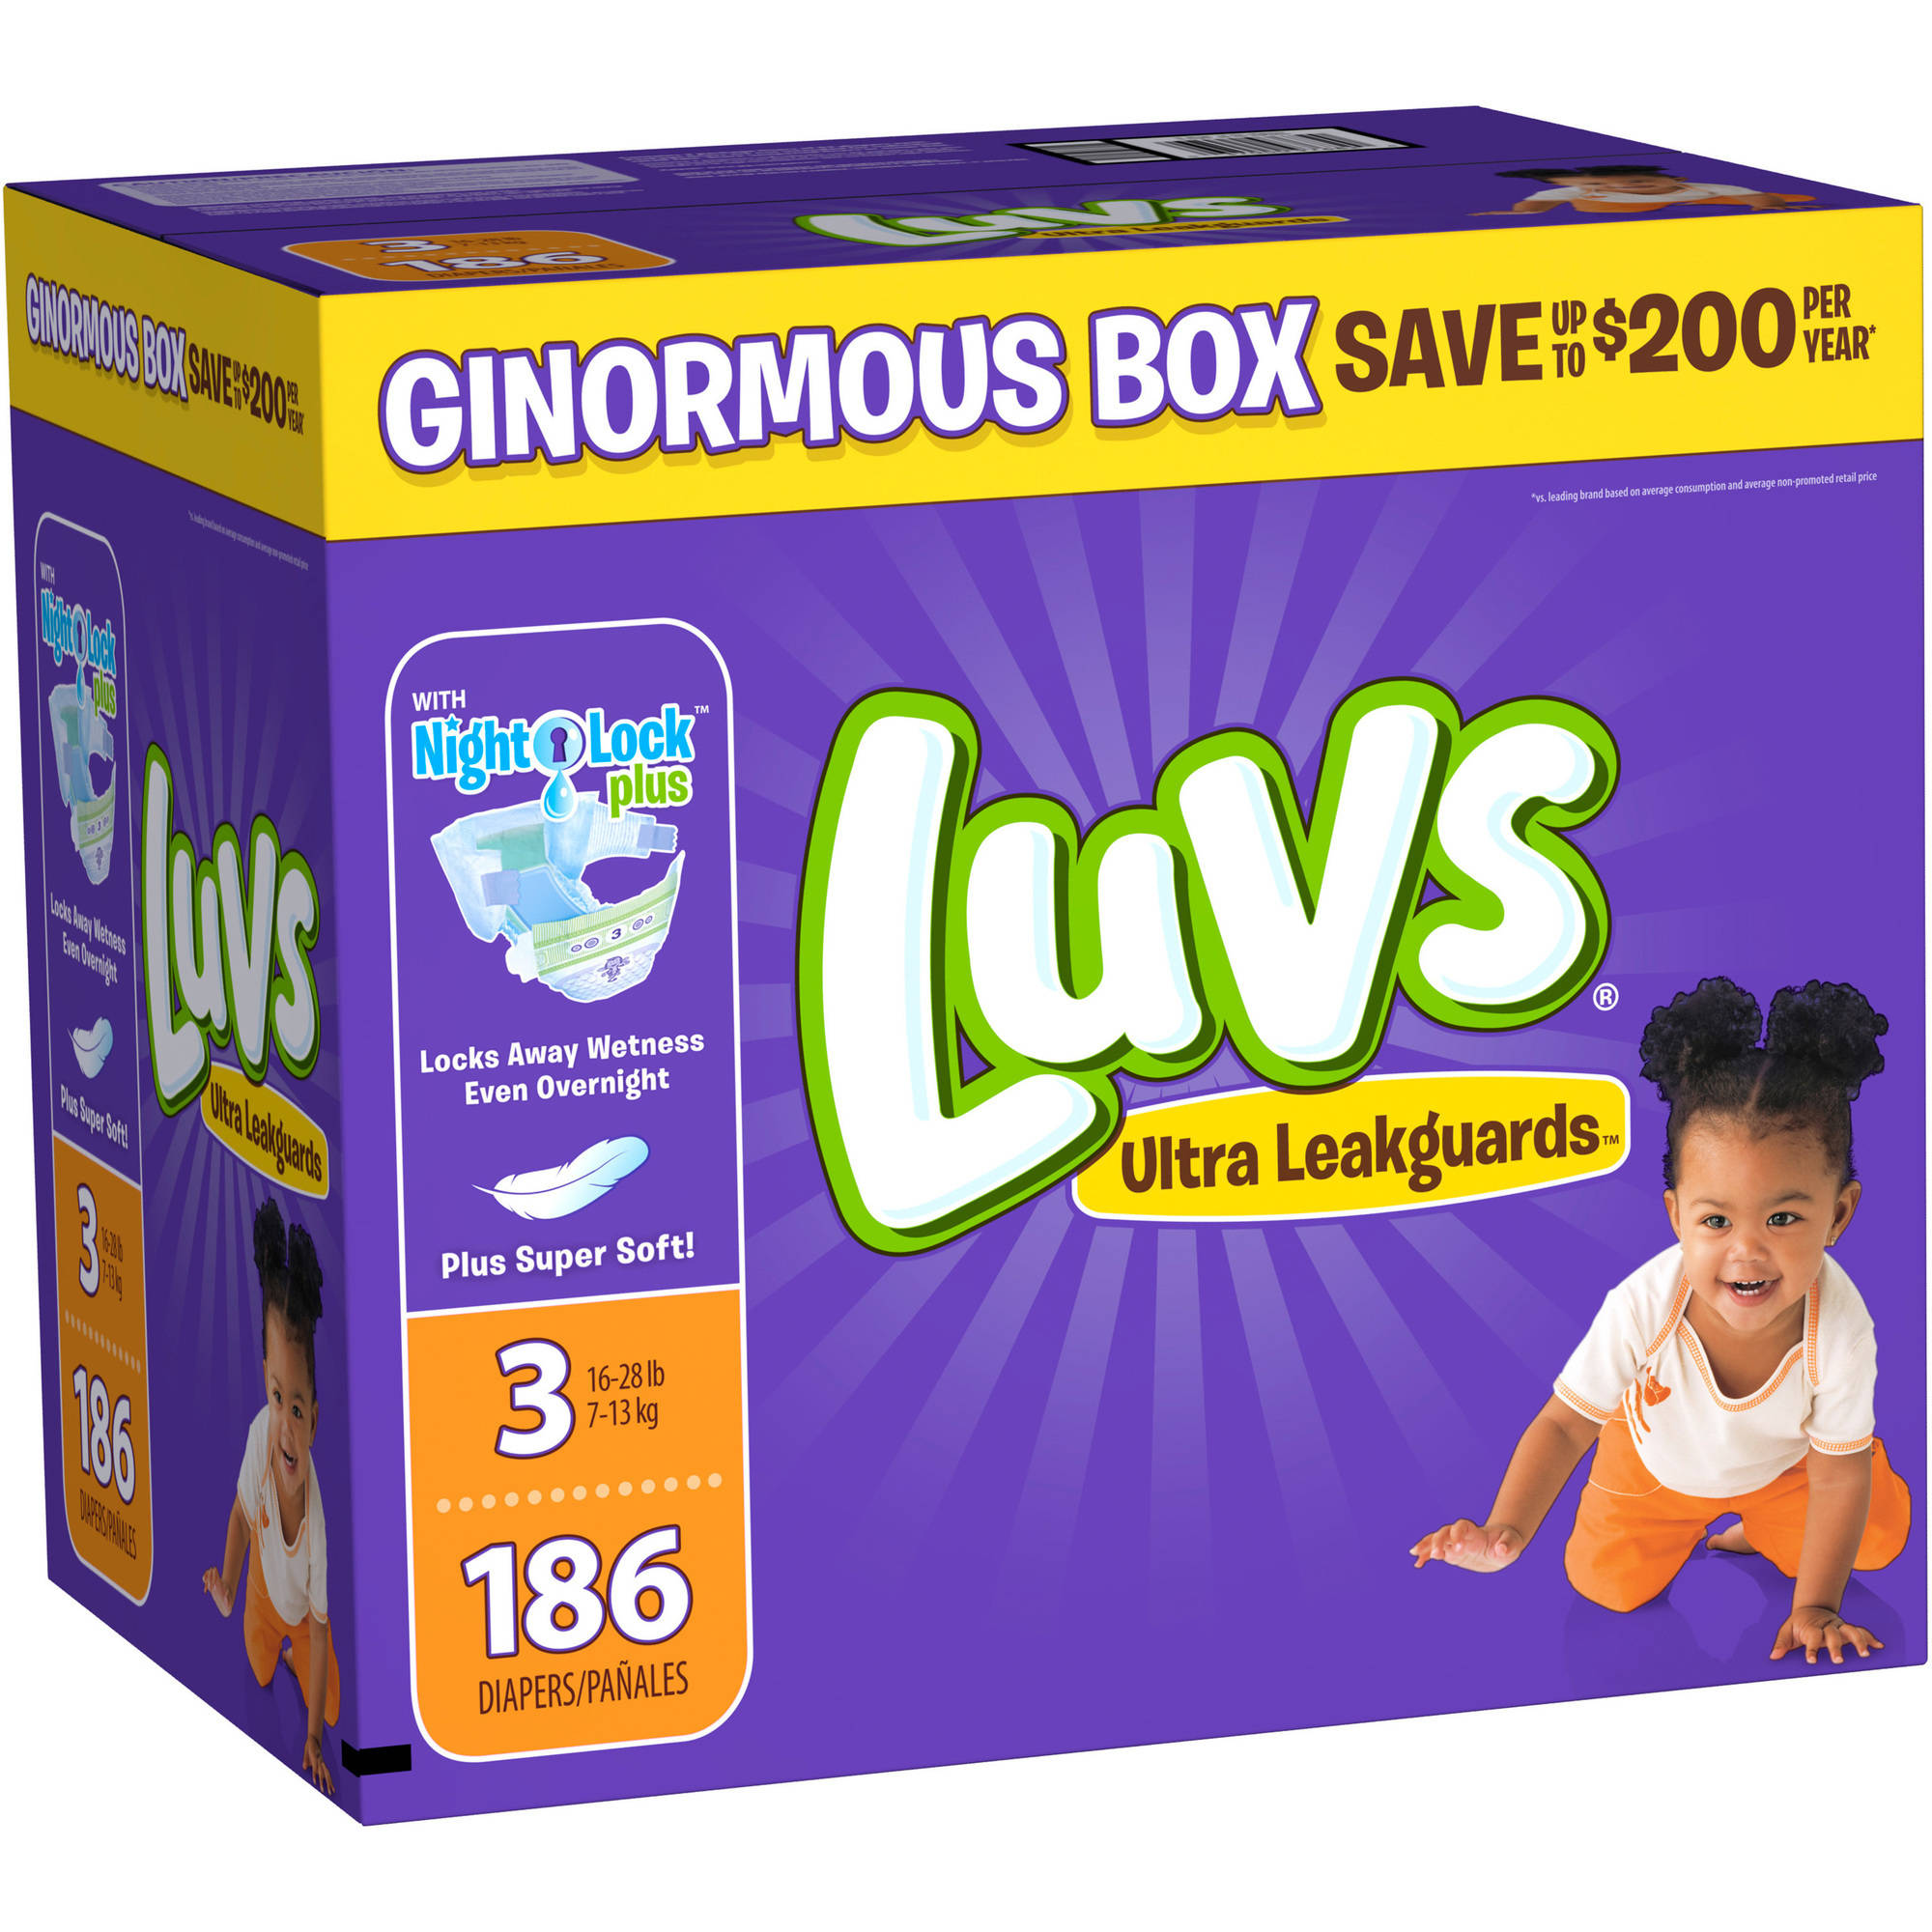 Luvs Ultra Leakguards Diapers, Size 3, 186 Diapers